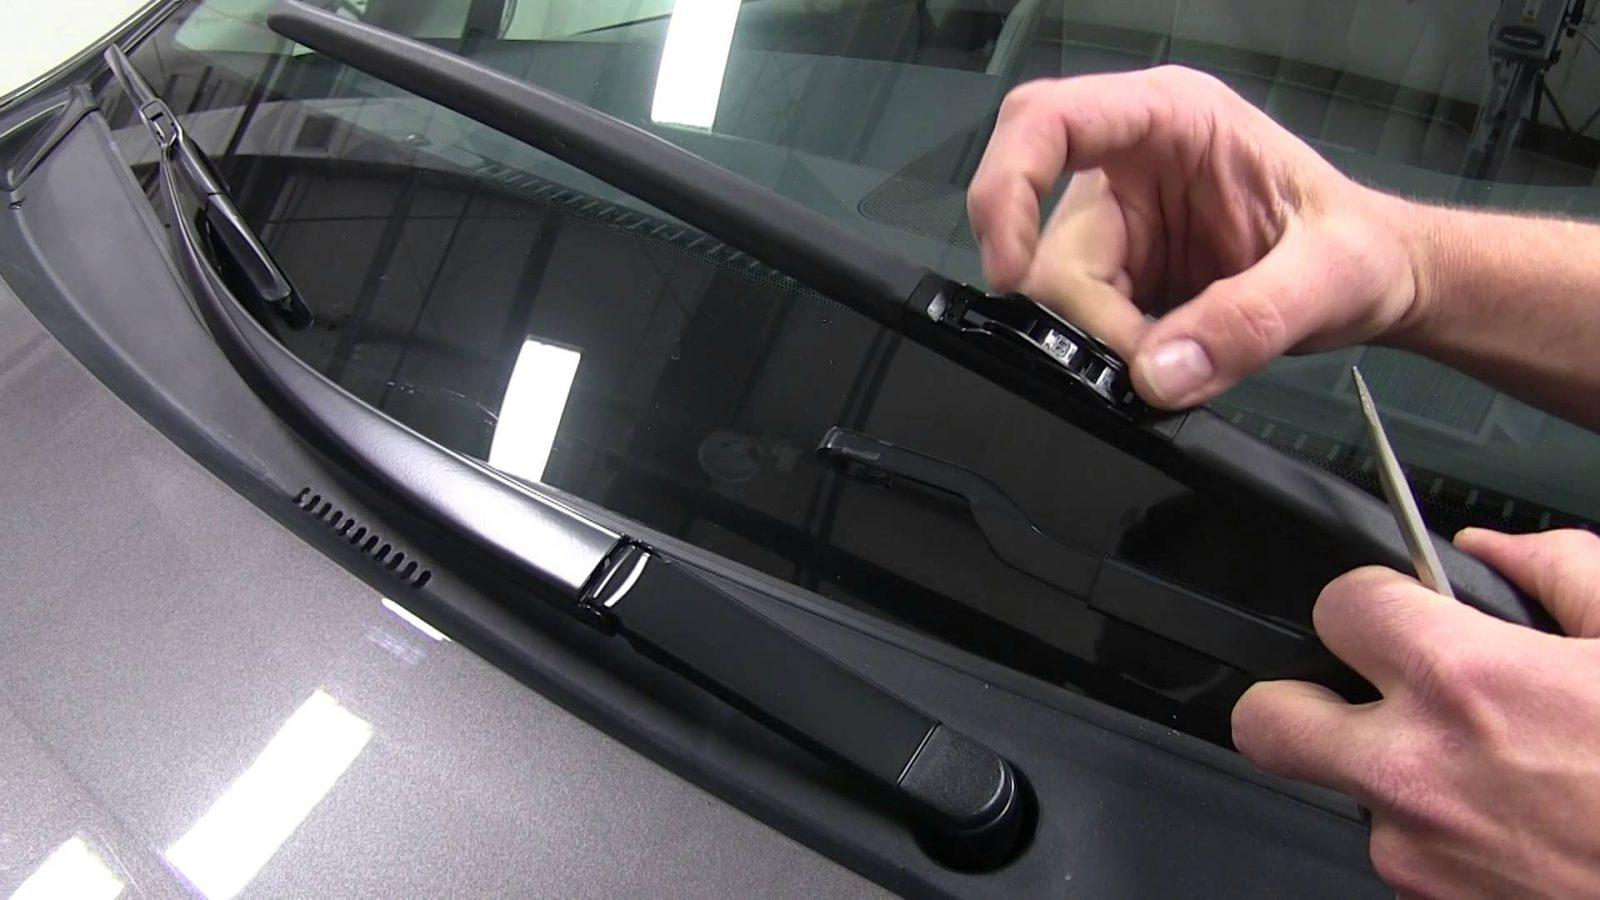 How to stop windshield wipers from squeaking 5 ways to try squeaky windshield wipers regular cleaning is important publicscrutiny Images